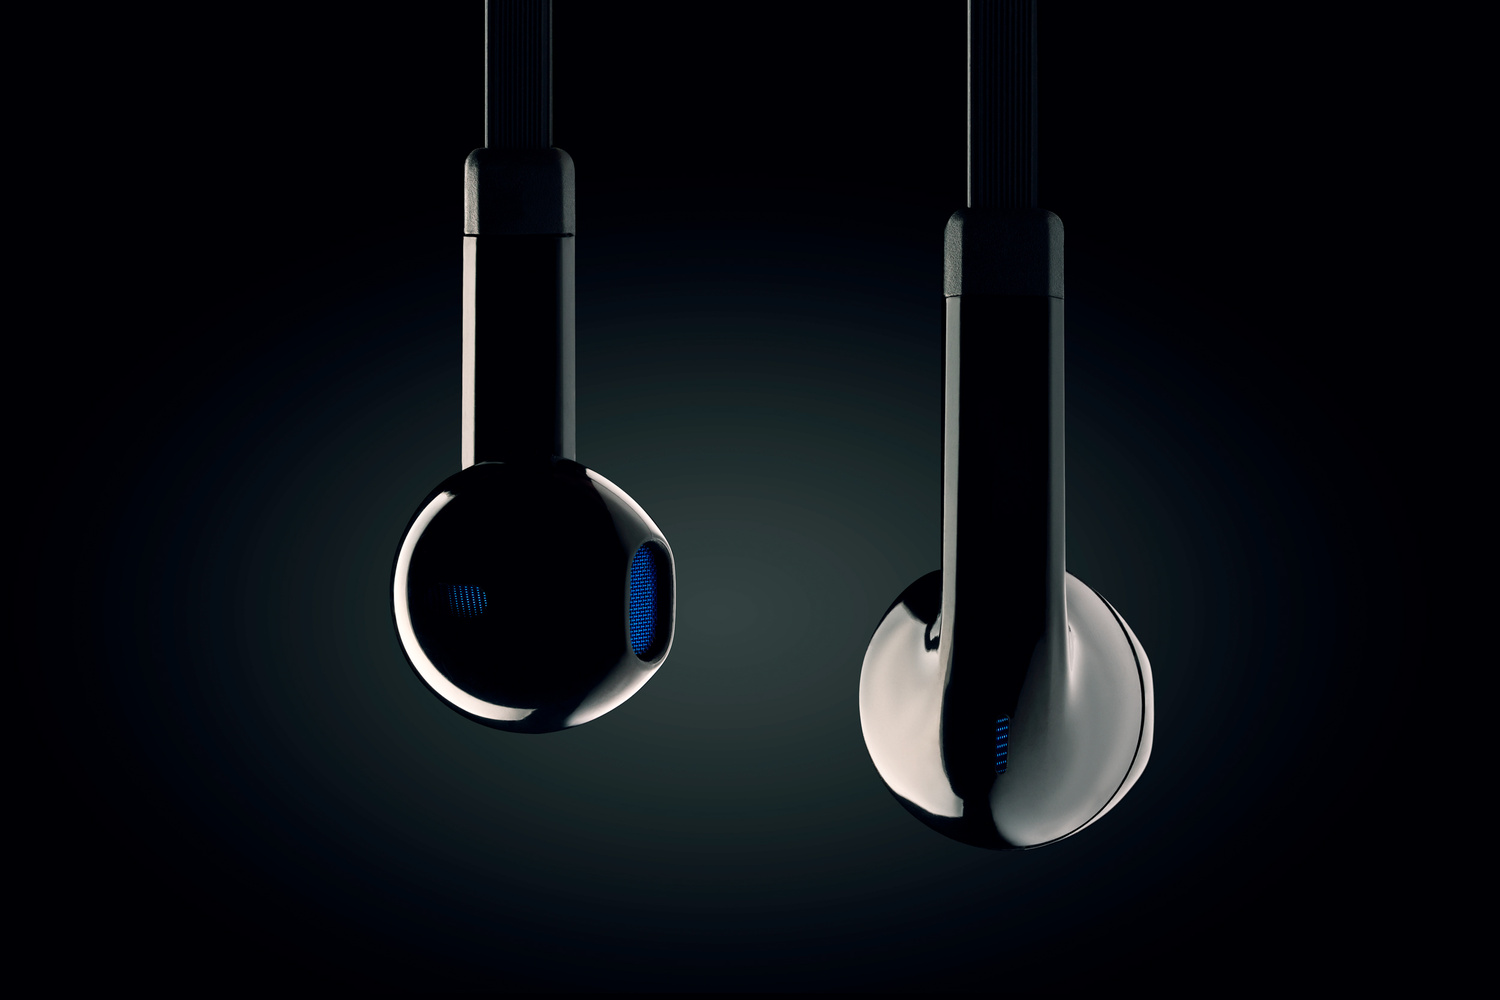 Earbuds by Tim Pumphrey